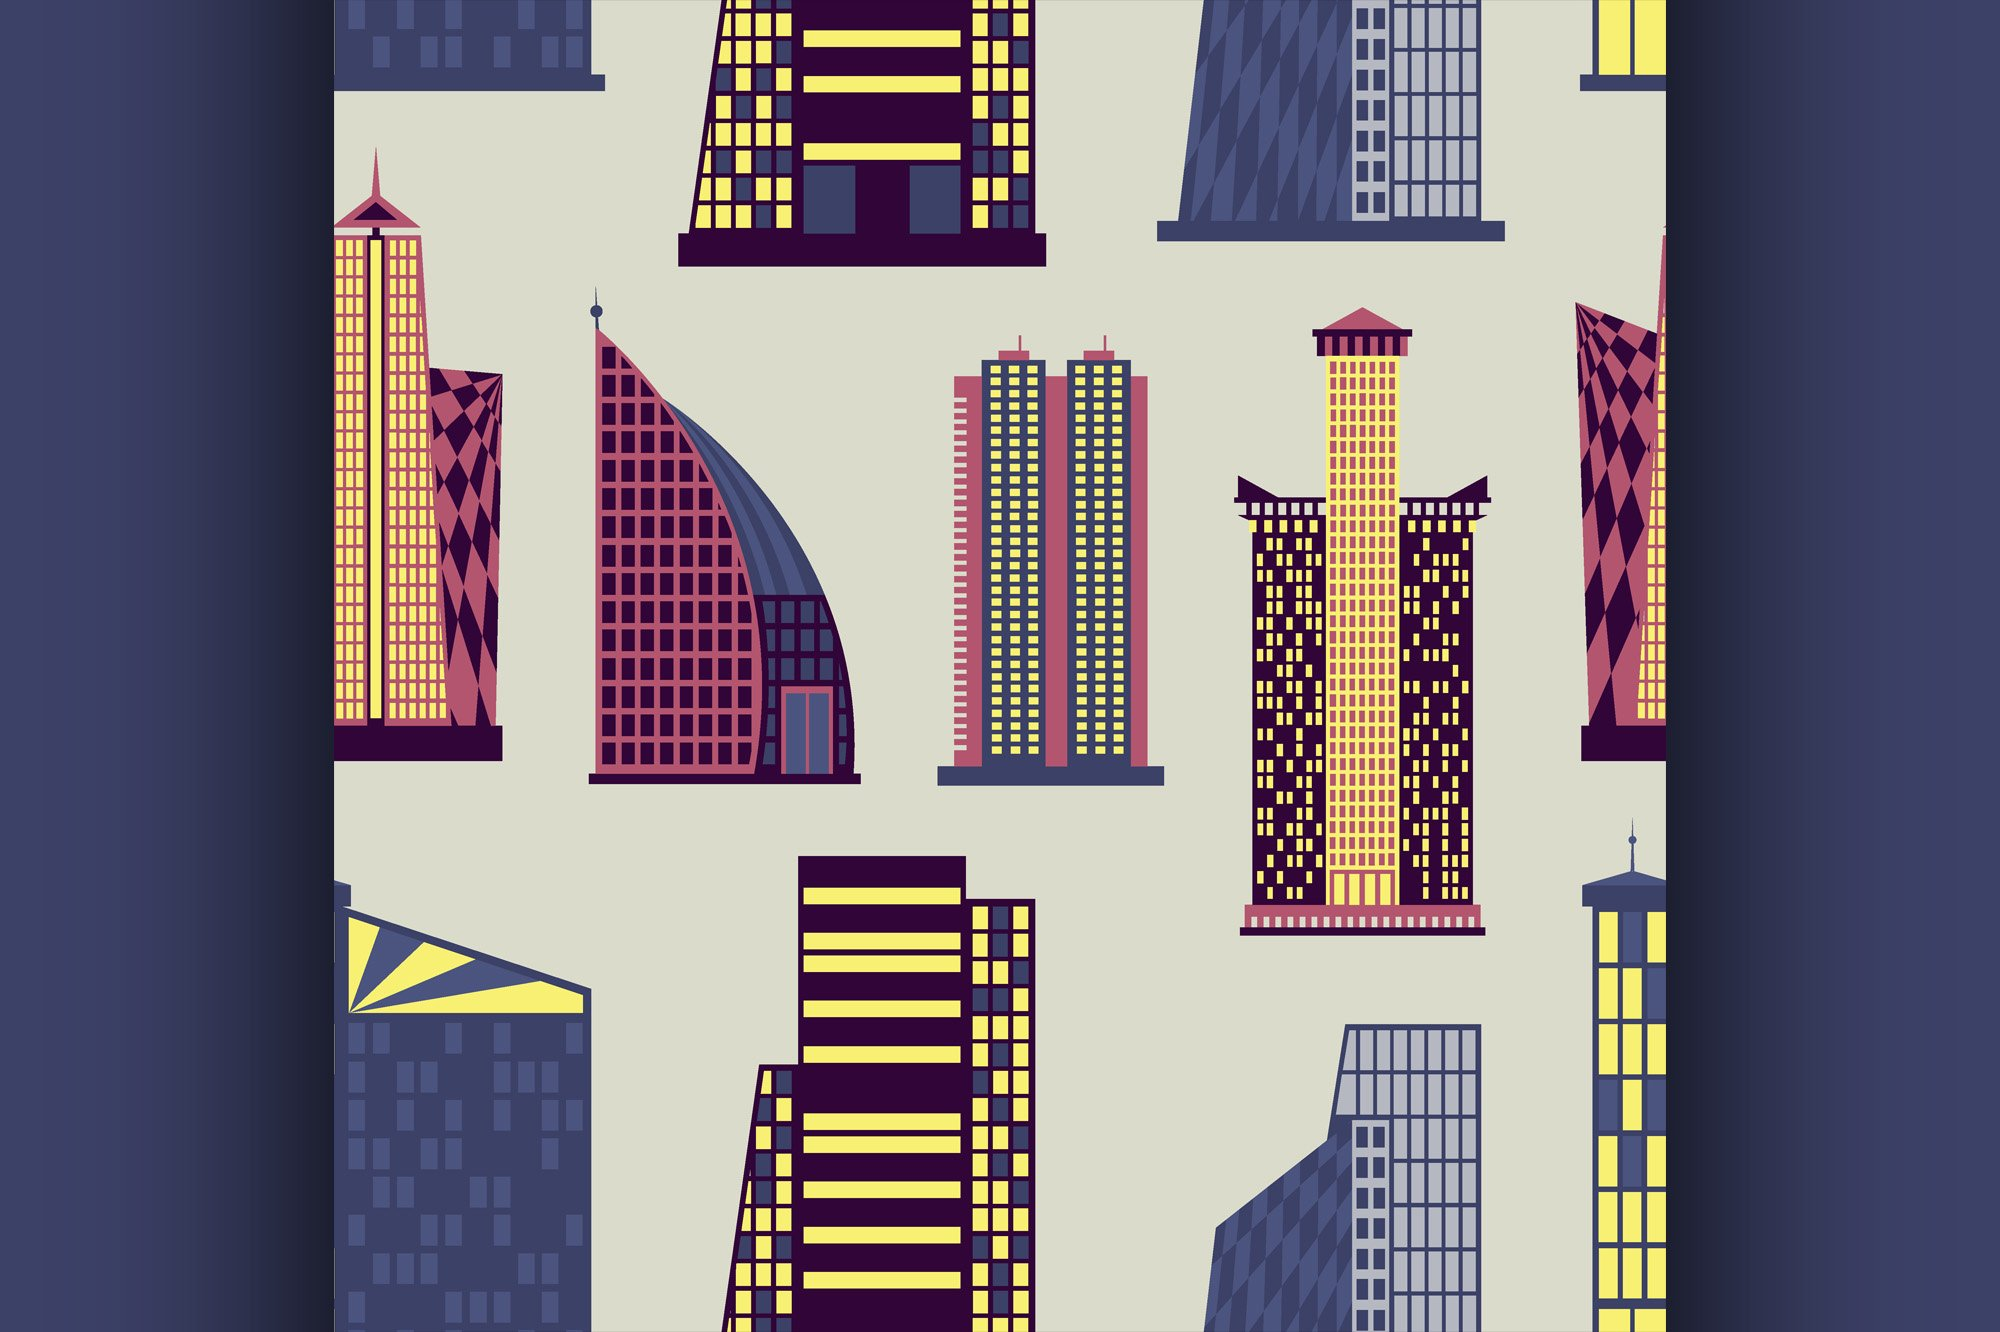 Skyscrapers set pattern example image 1